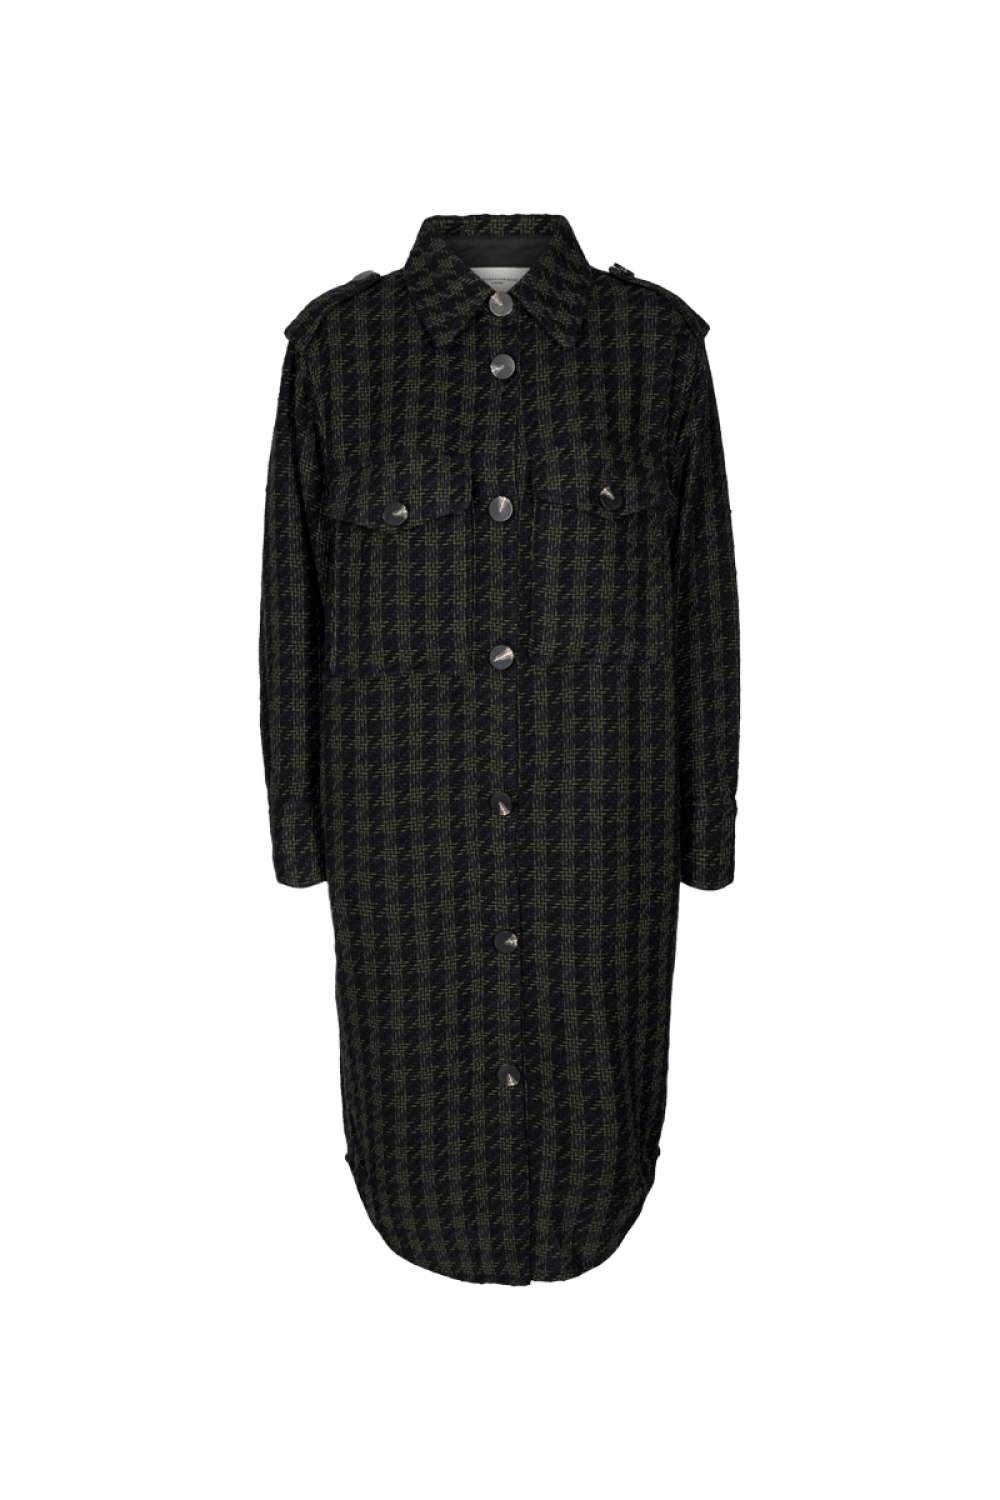 Cph Muse 123746 Isabel Shirt Black Dark Olive mix as sms